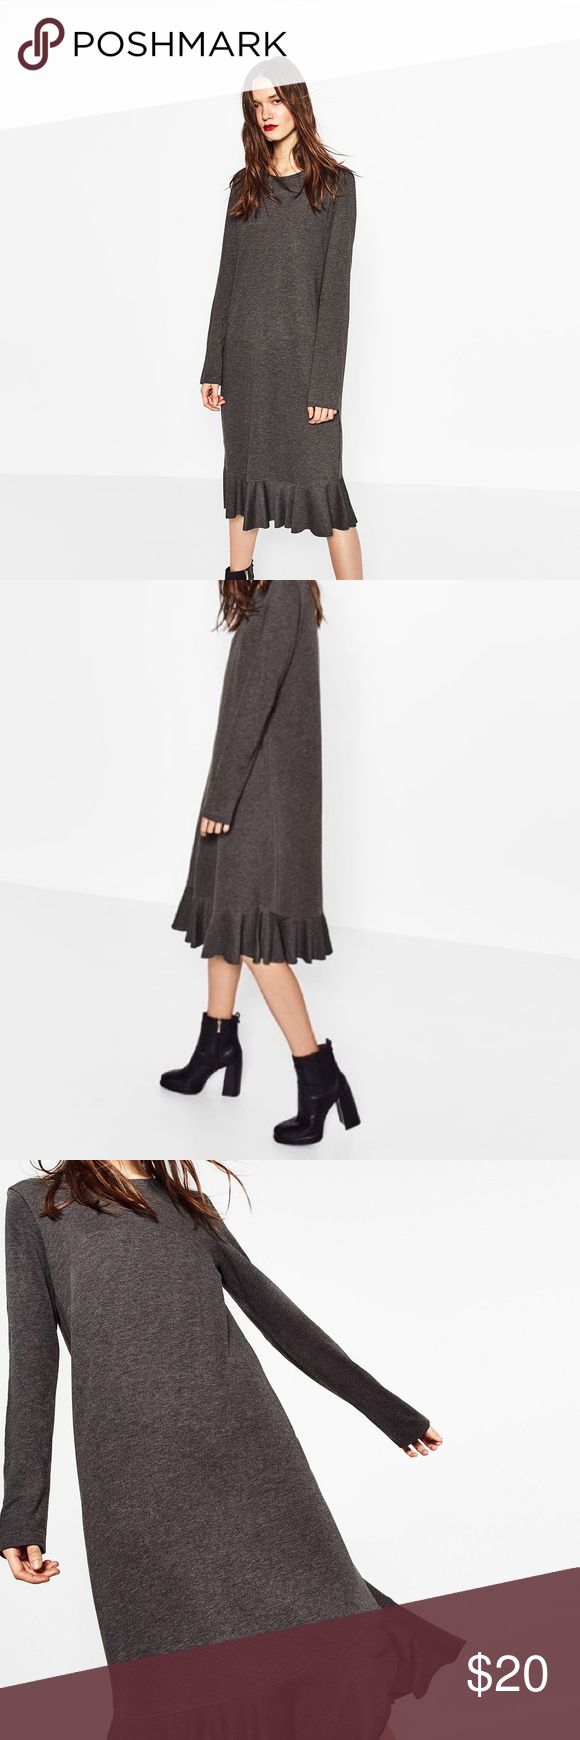 PLUSH FRILL DRESS | ZARA Long midi gray dress with a frill bottom that has a raw hem. Good balance of casual yet cute. Perfect Condition - Worn once for about an hour.   Plush dress, midi dress, round neck. 60% Cotton, 40% Polyester. Next day shipment! Zara Dresses Midi